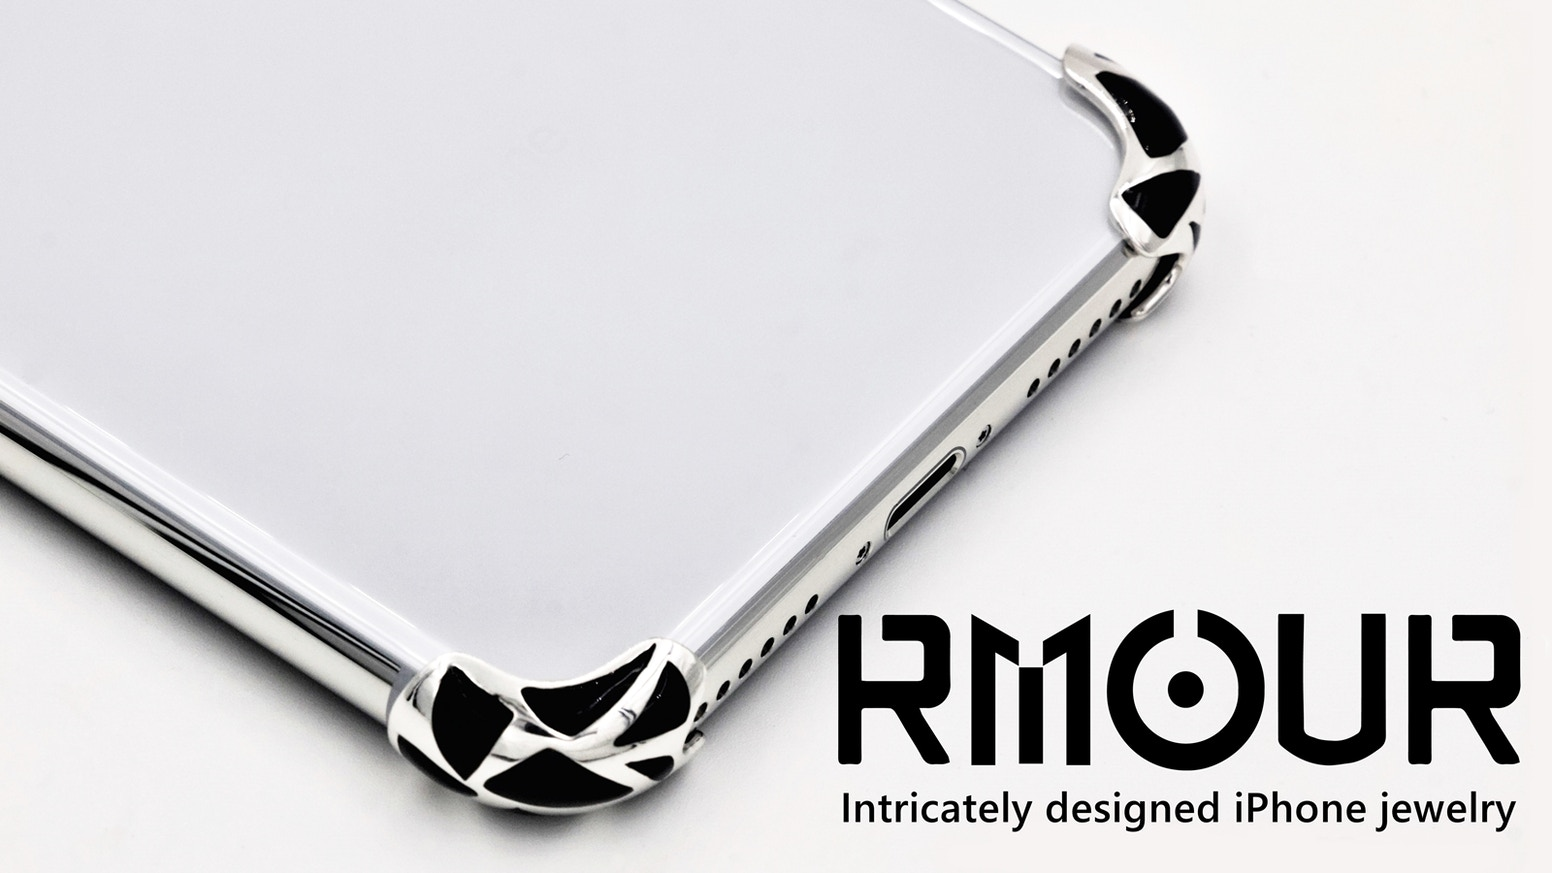 Intricately designed iPhone Jewelry. Rmour protects the most vulnerable parts of your iPhone in a #luxury and #stylish way.